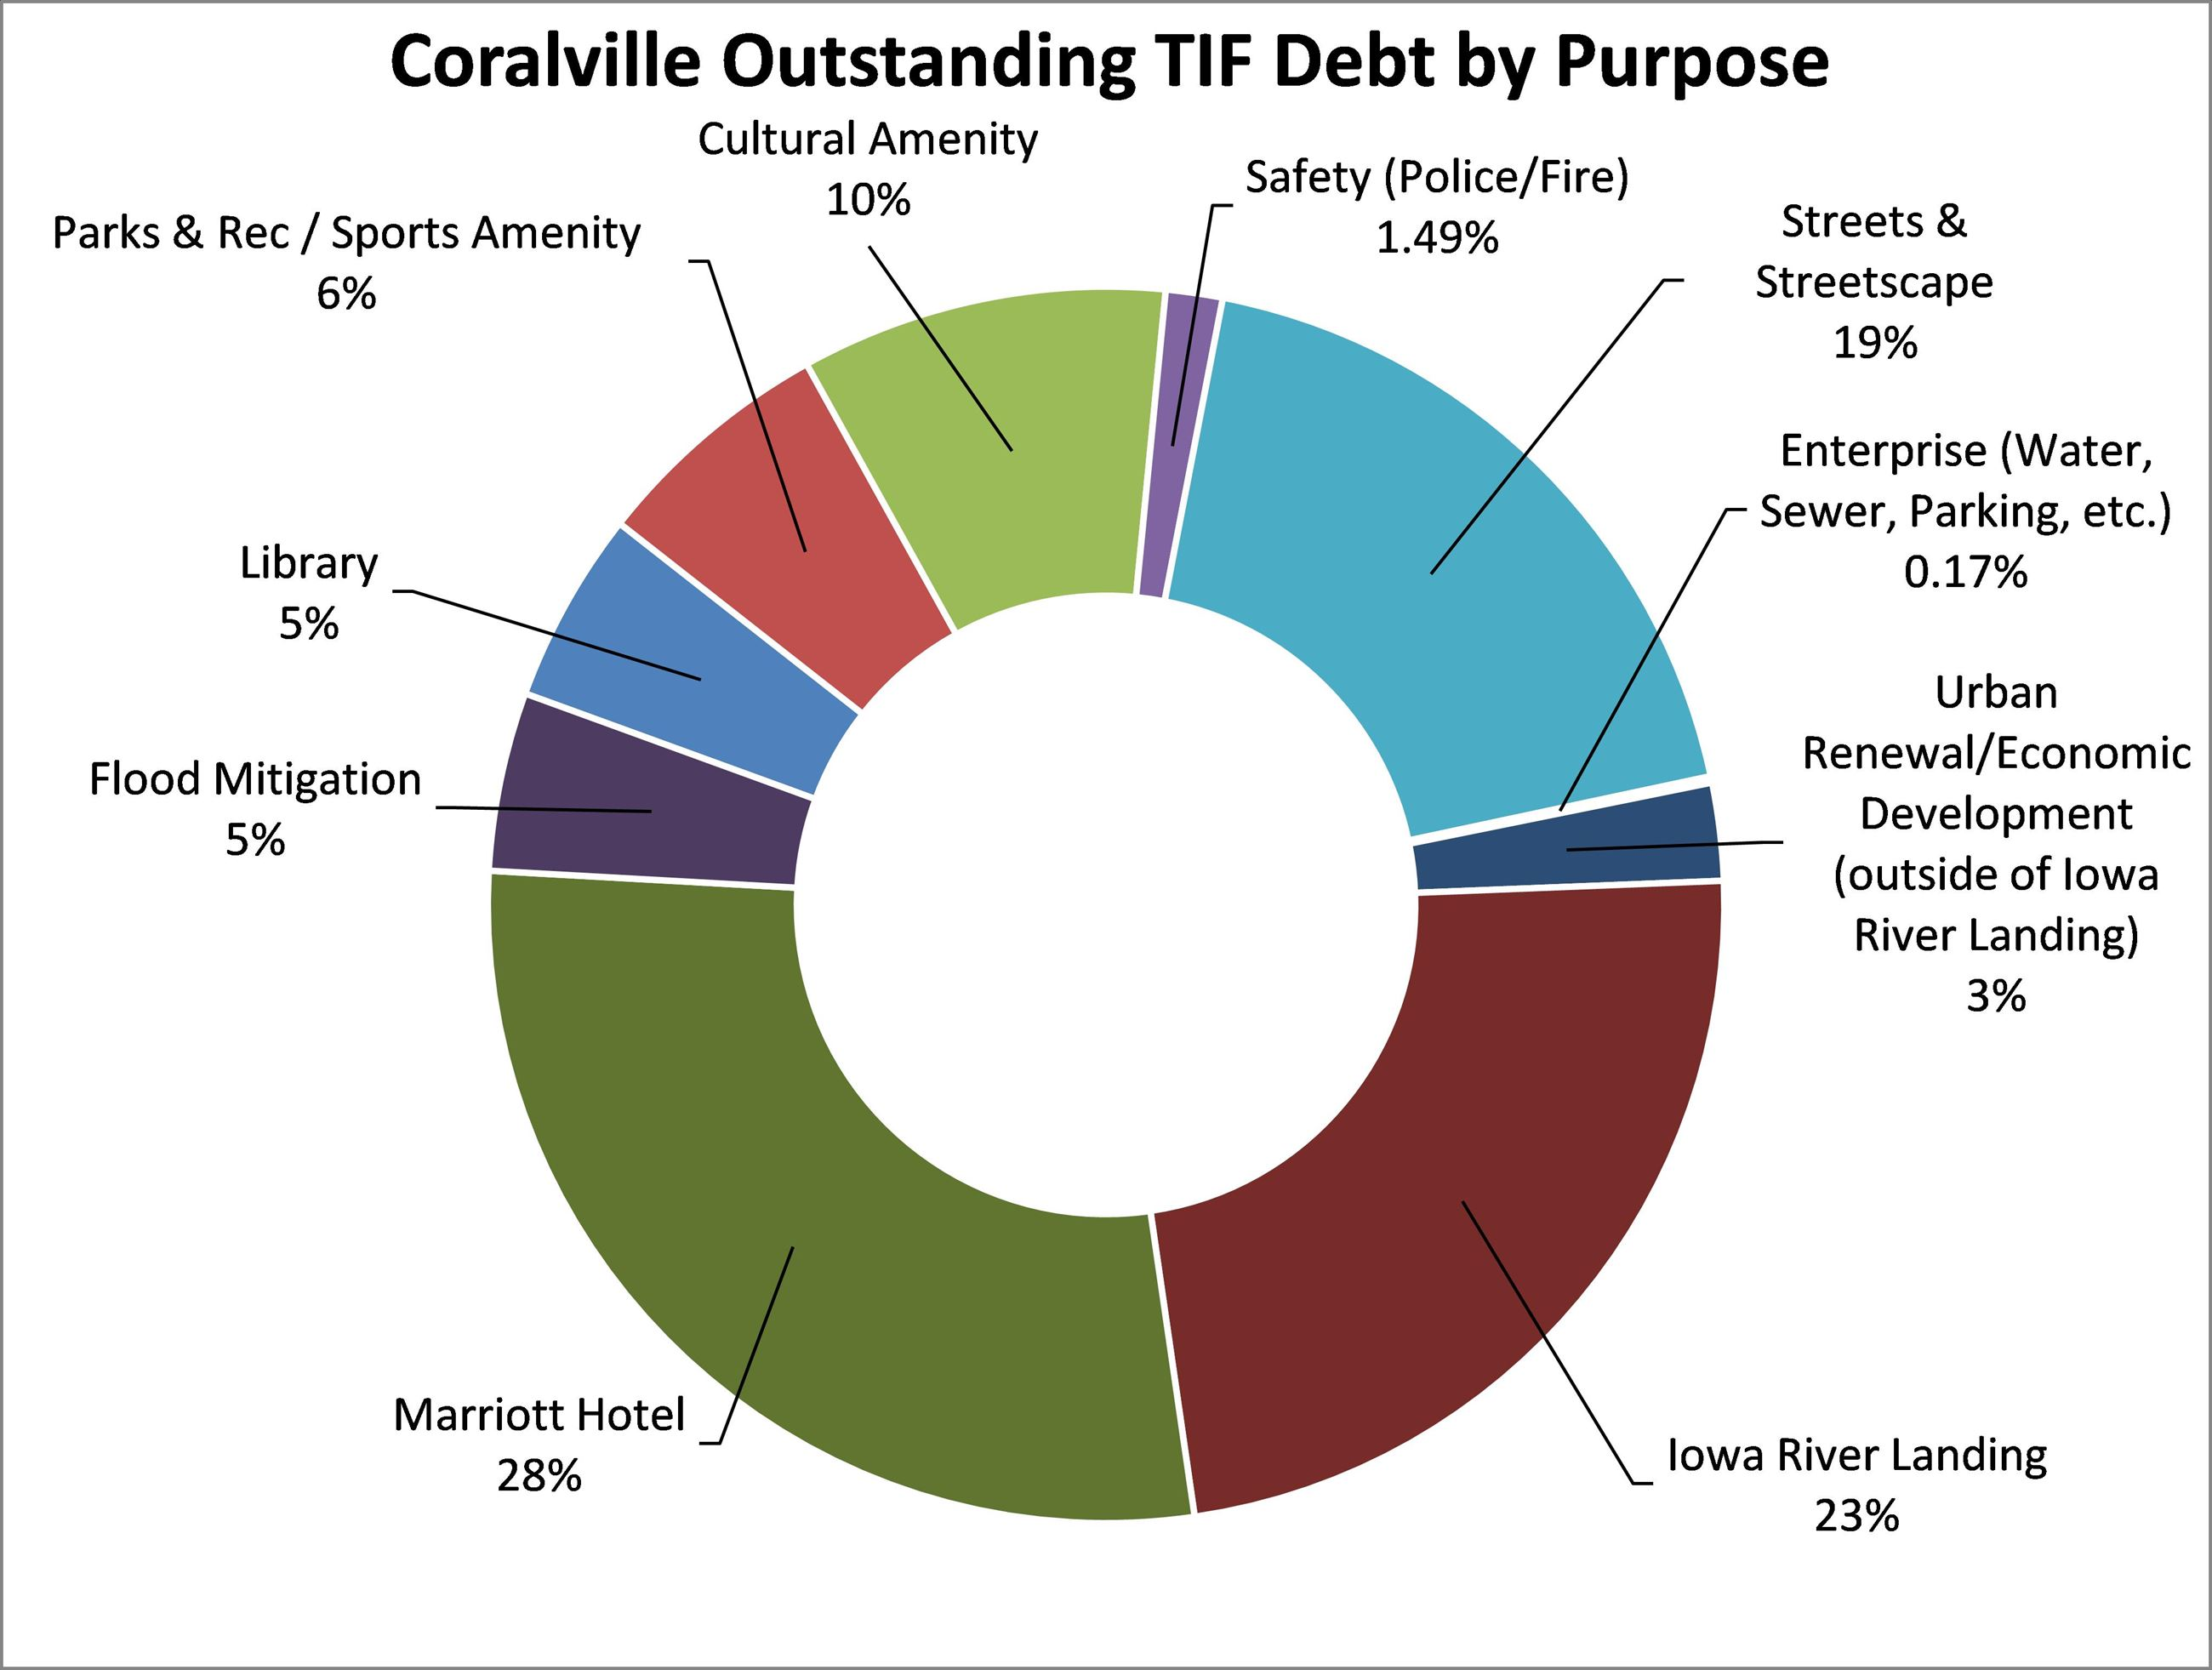 Outstanding TIF Debt by Purpose donut chart